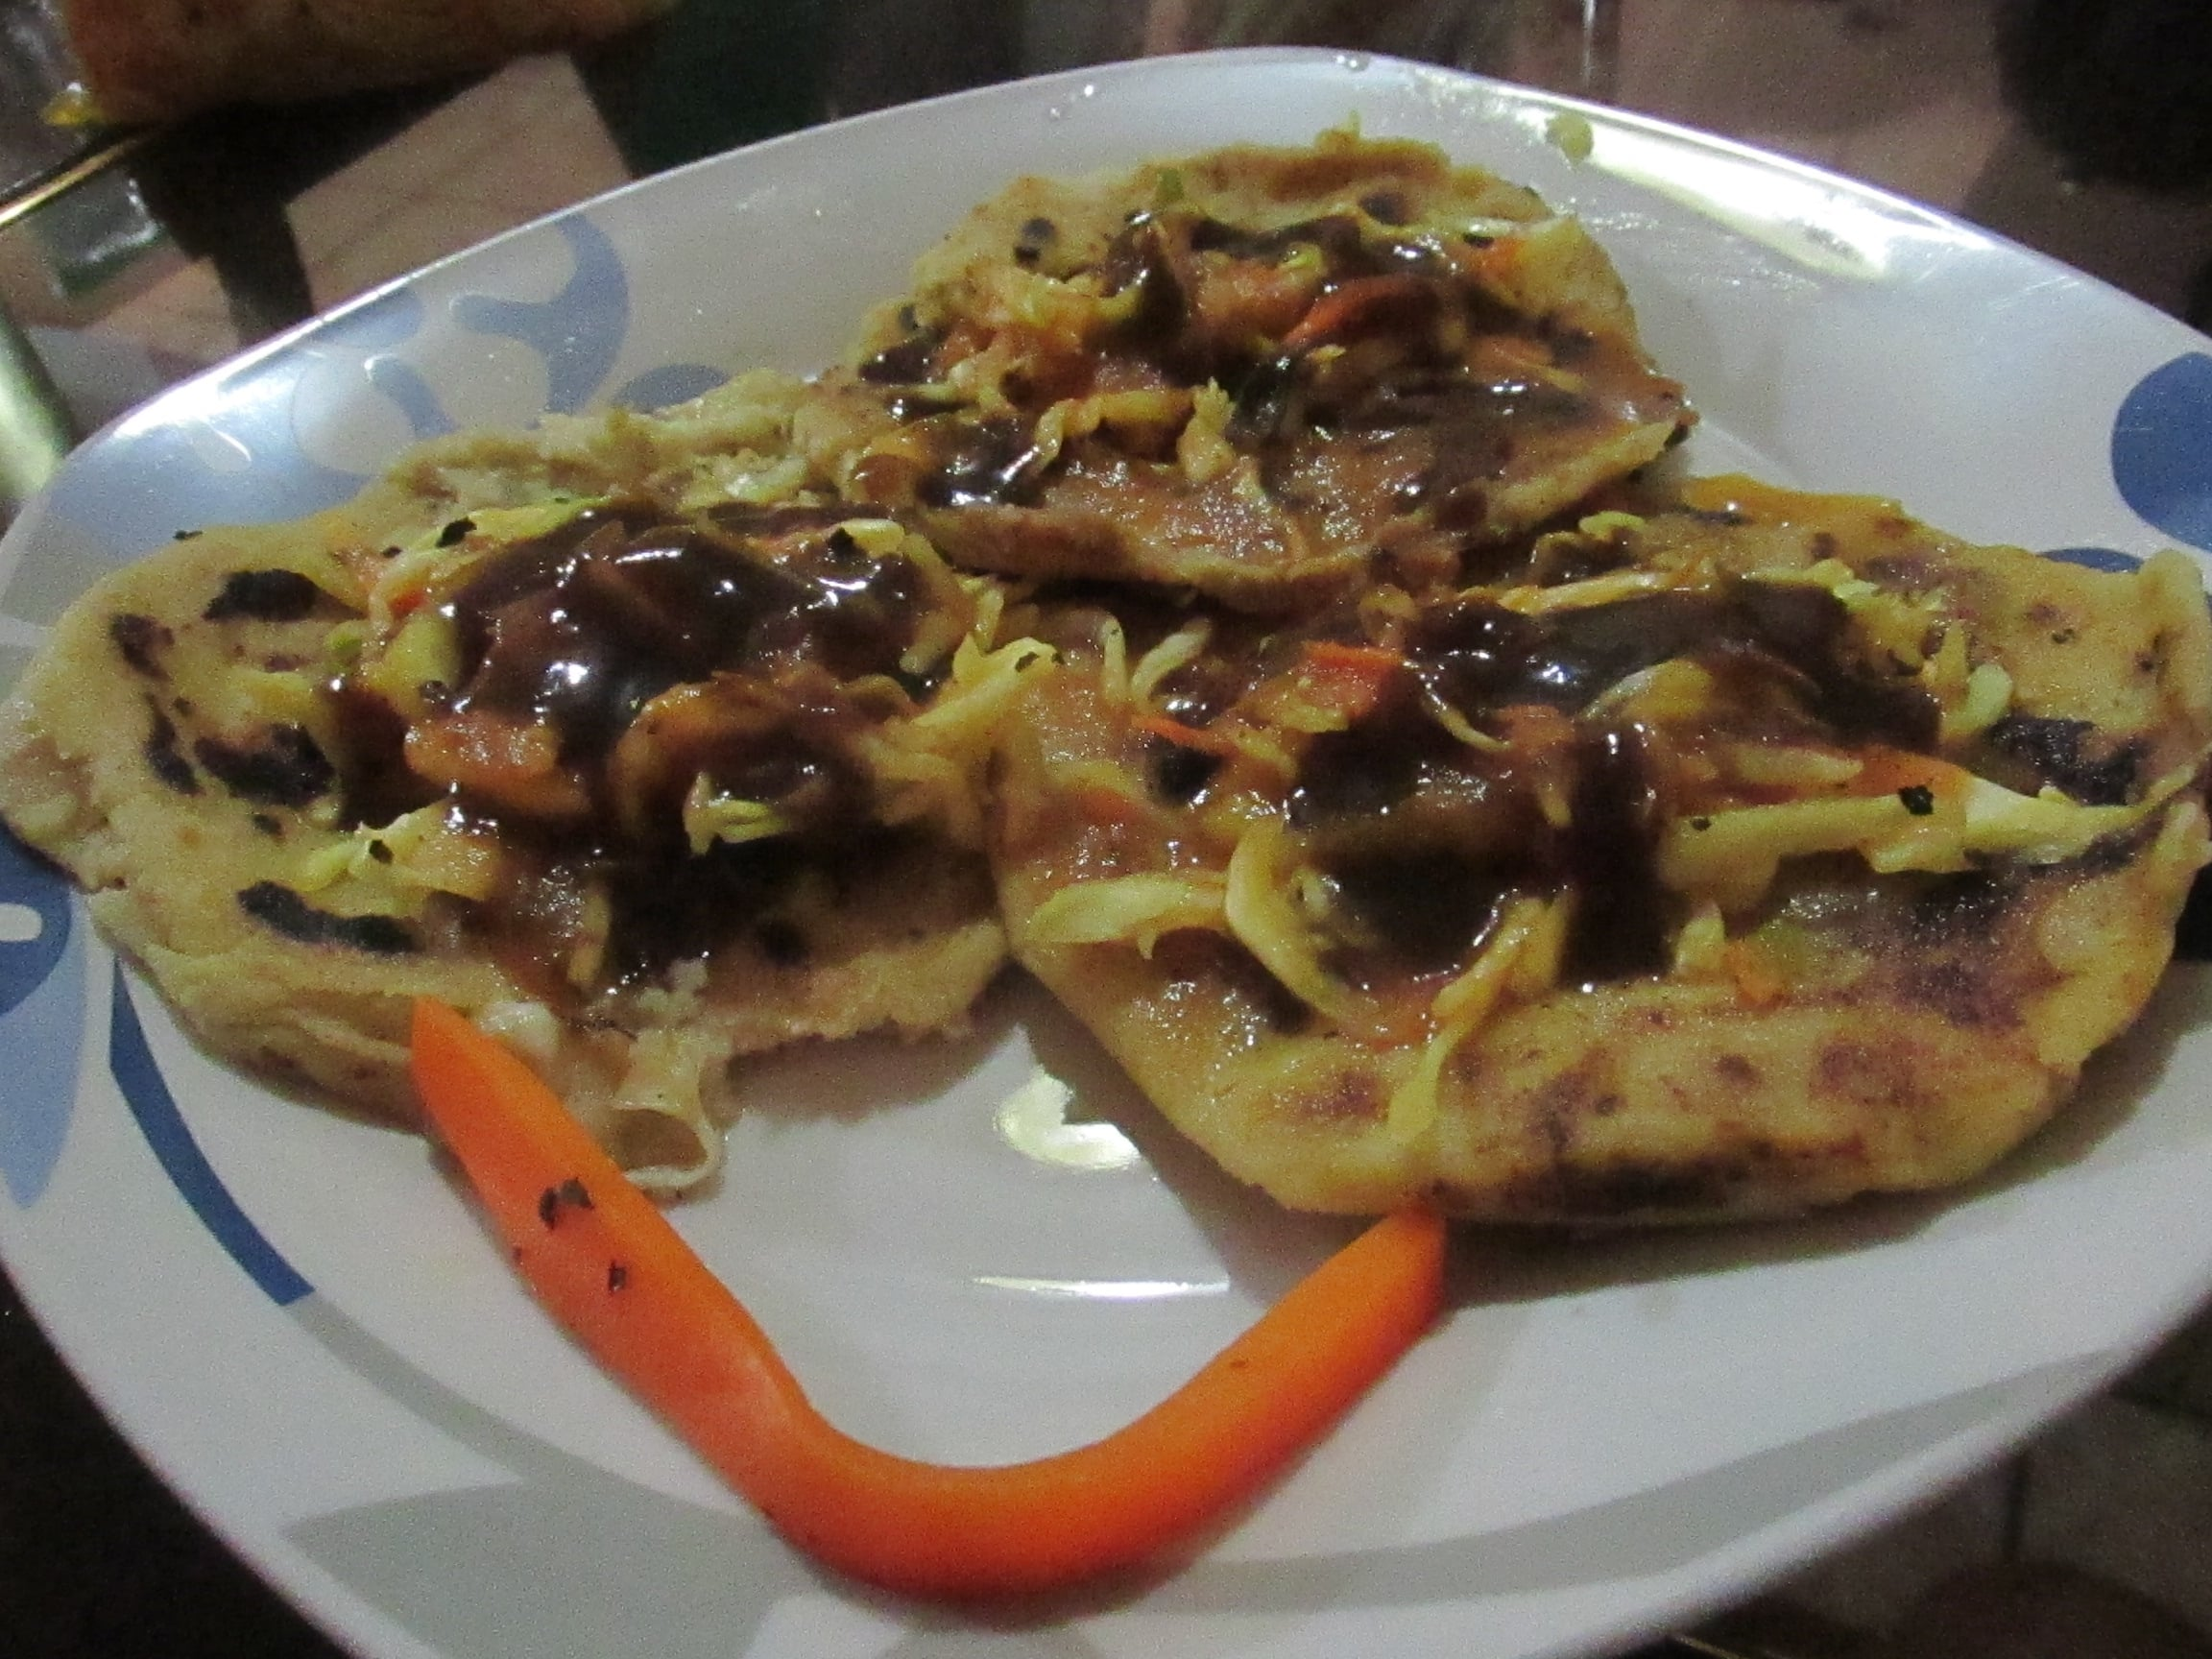 Several pupusas decorated with spicy vegetables and salad.